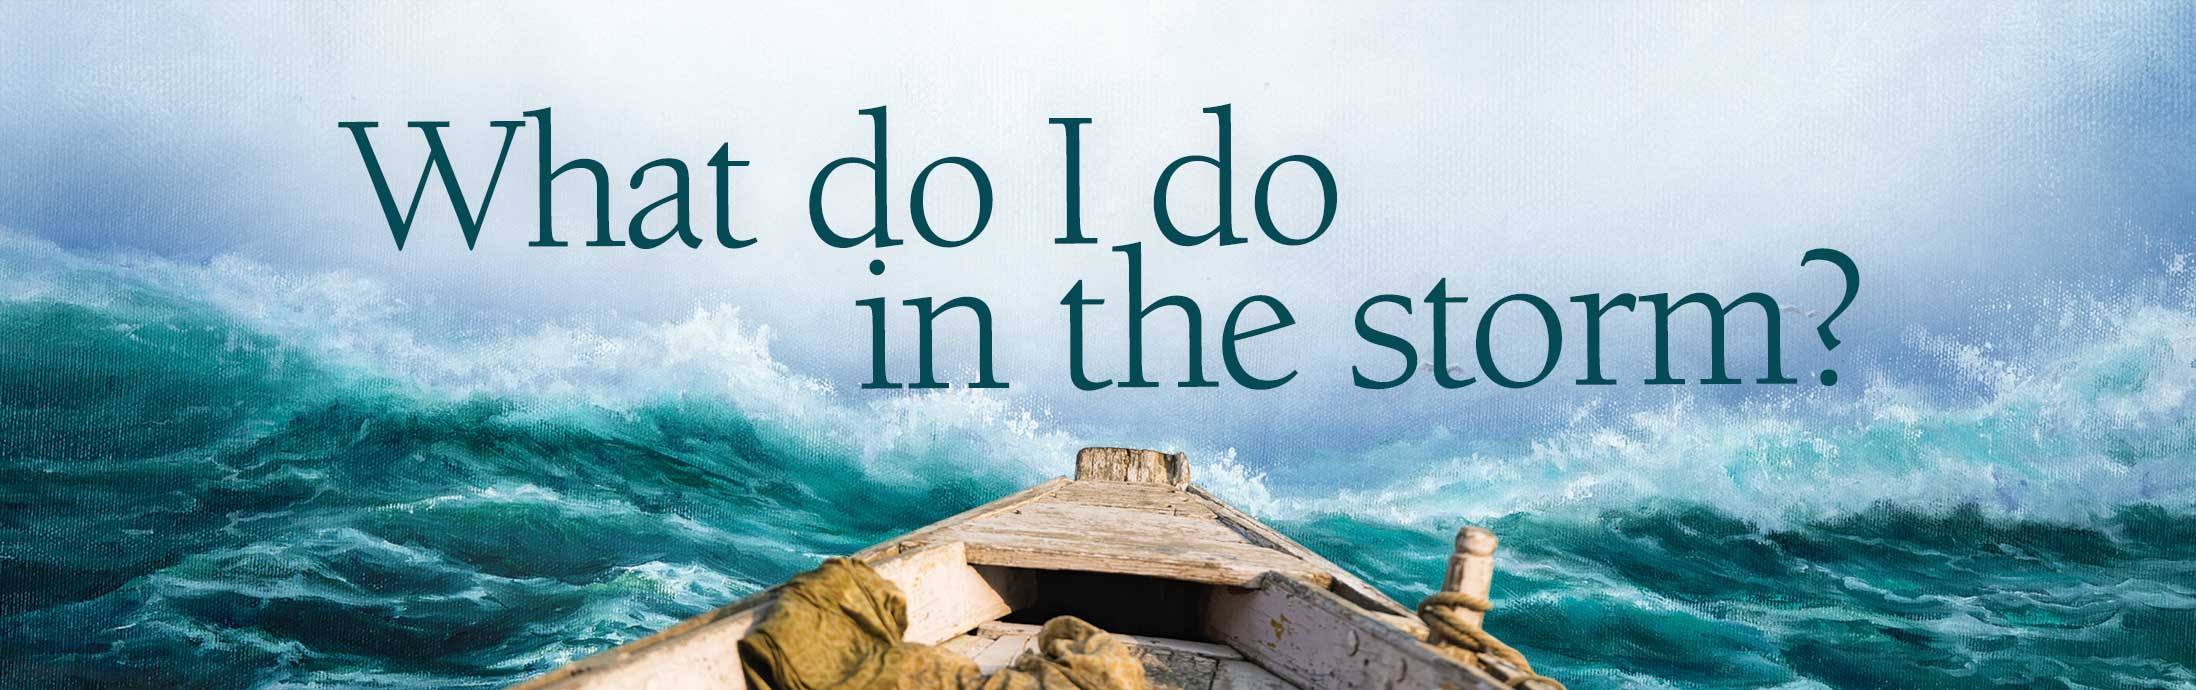 What do I do in the storm? donation form header